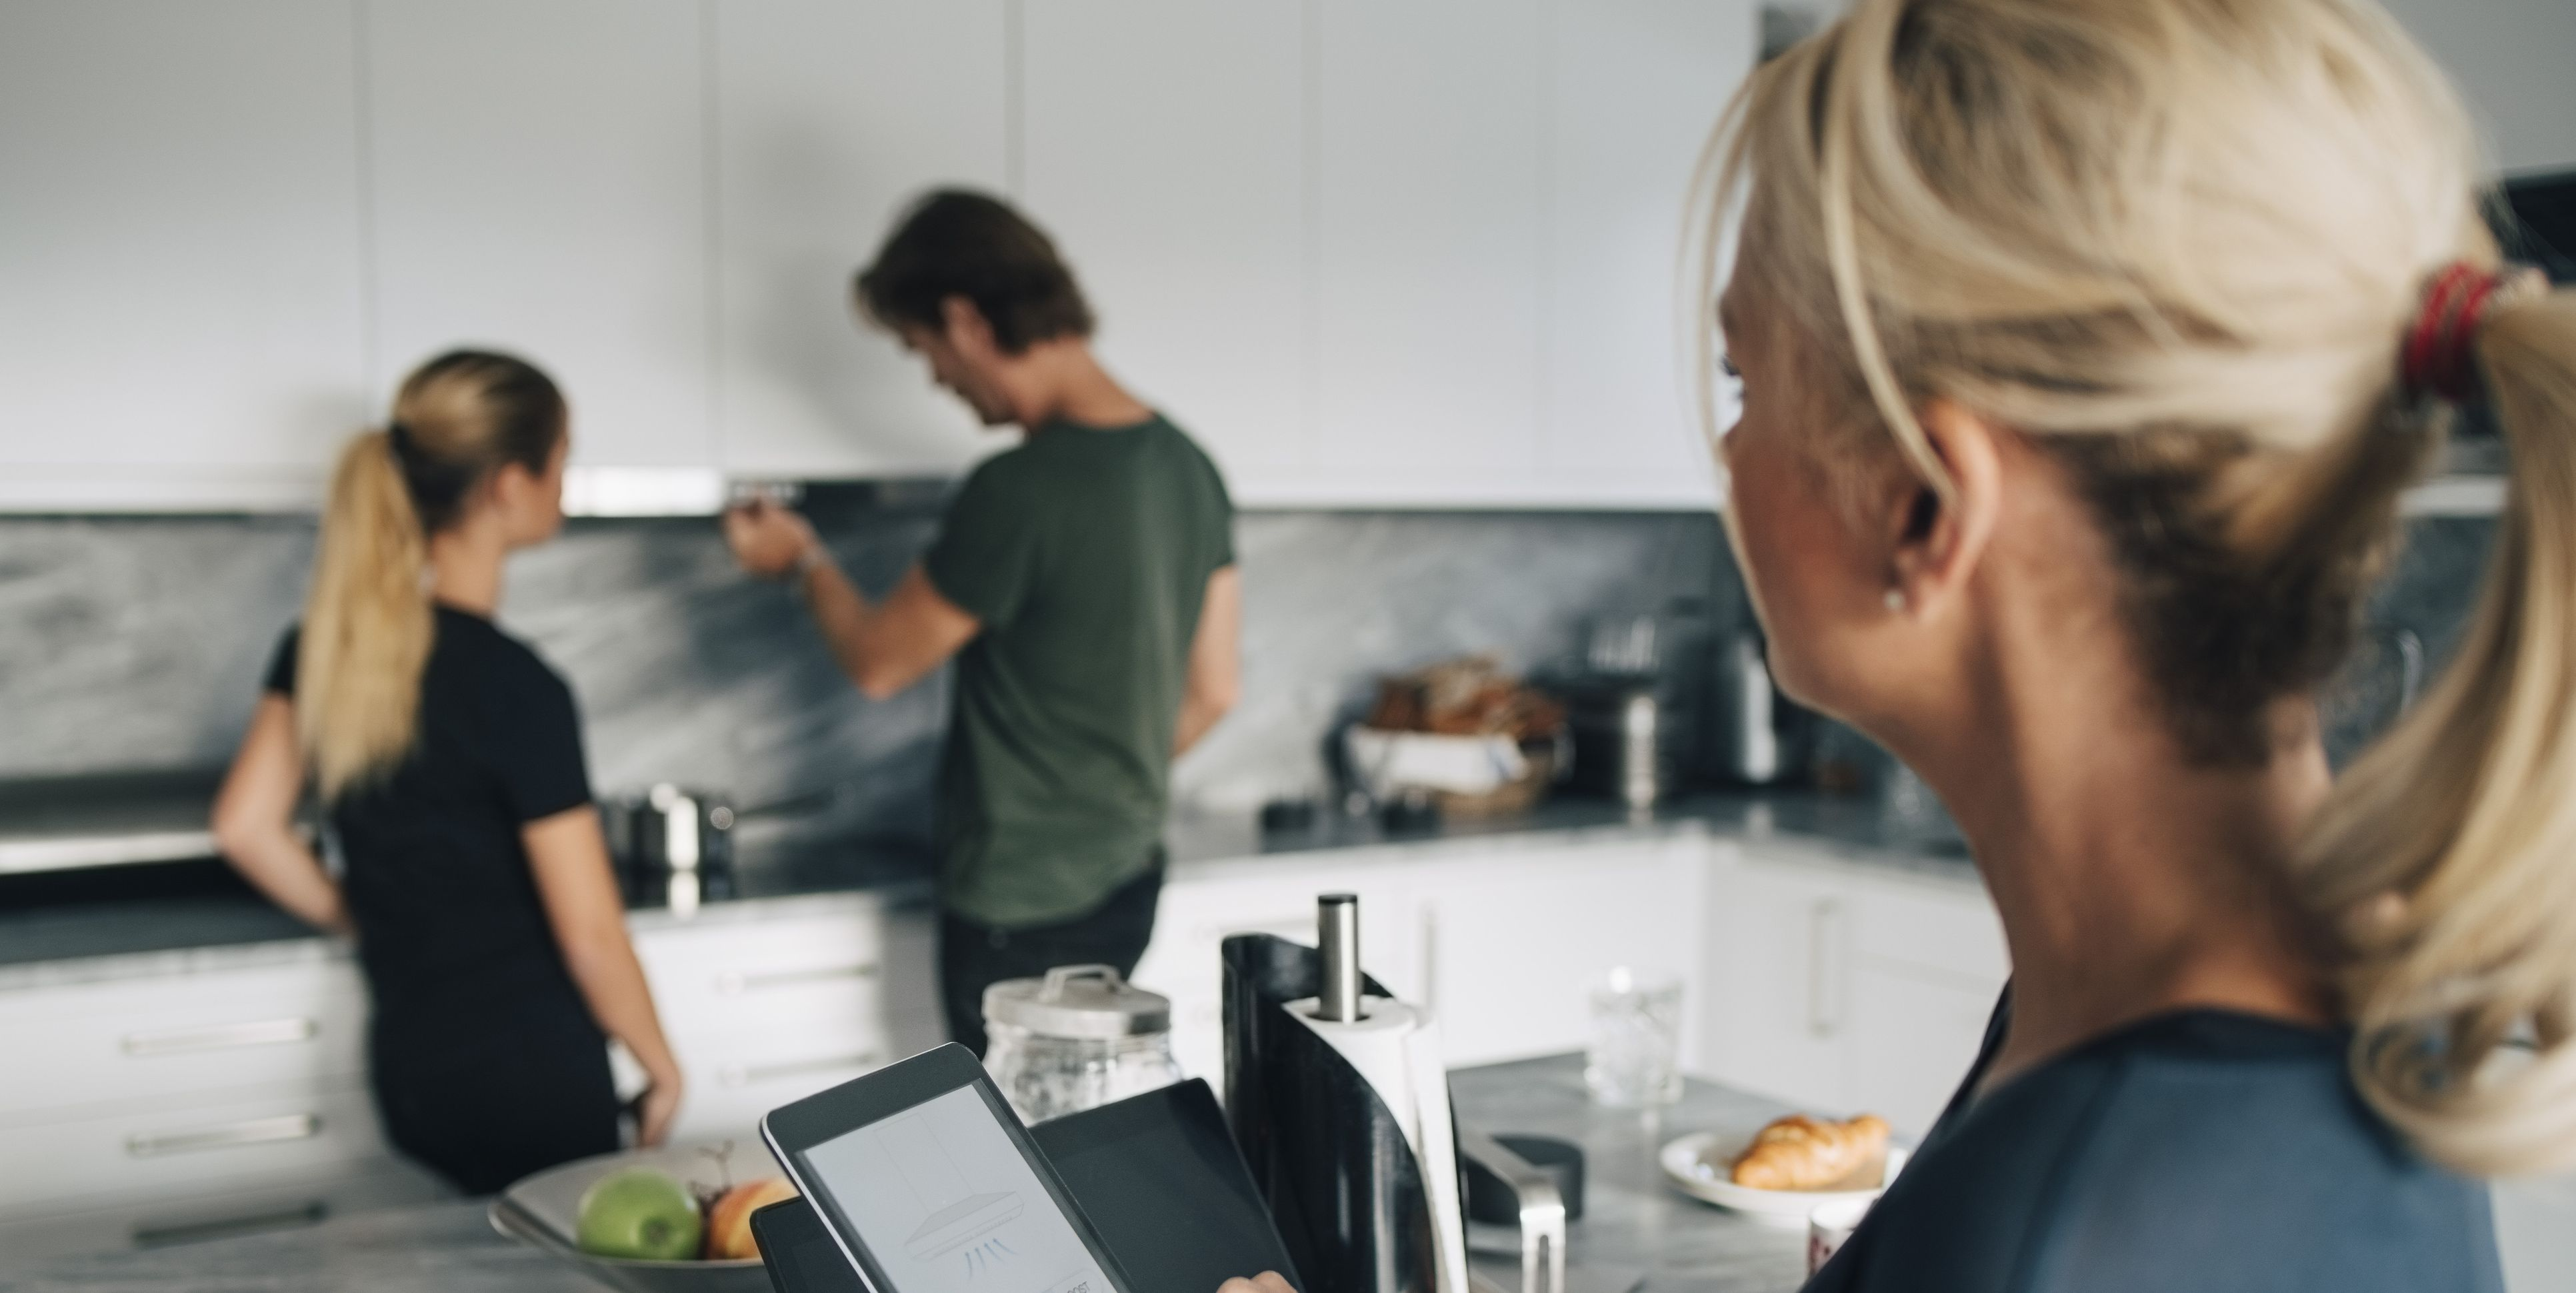 Mature woman with technologies looking at man and daughter standing in kitchen